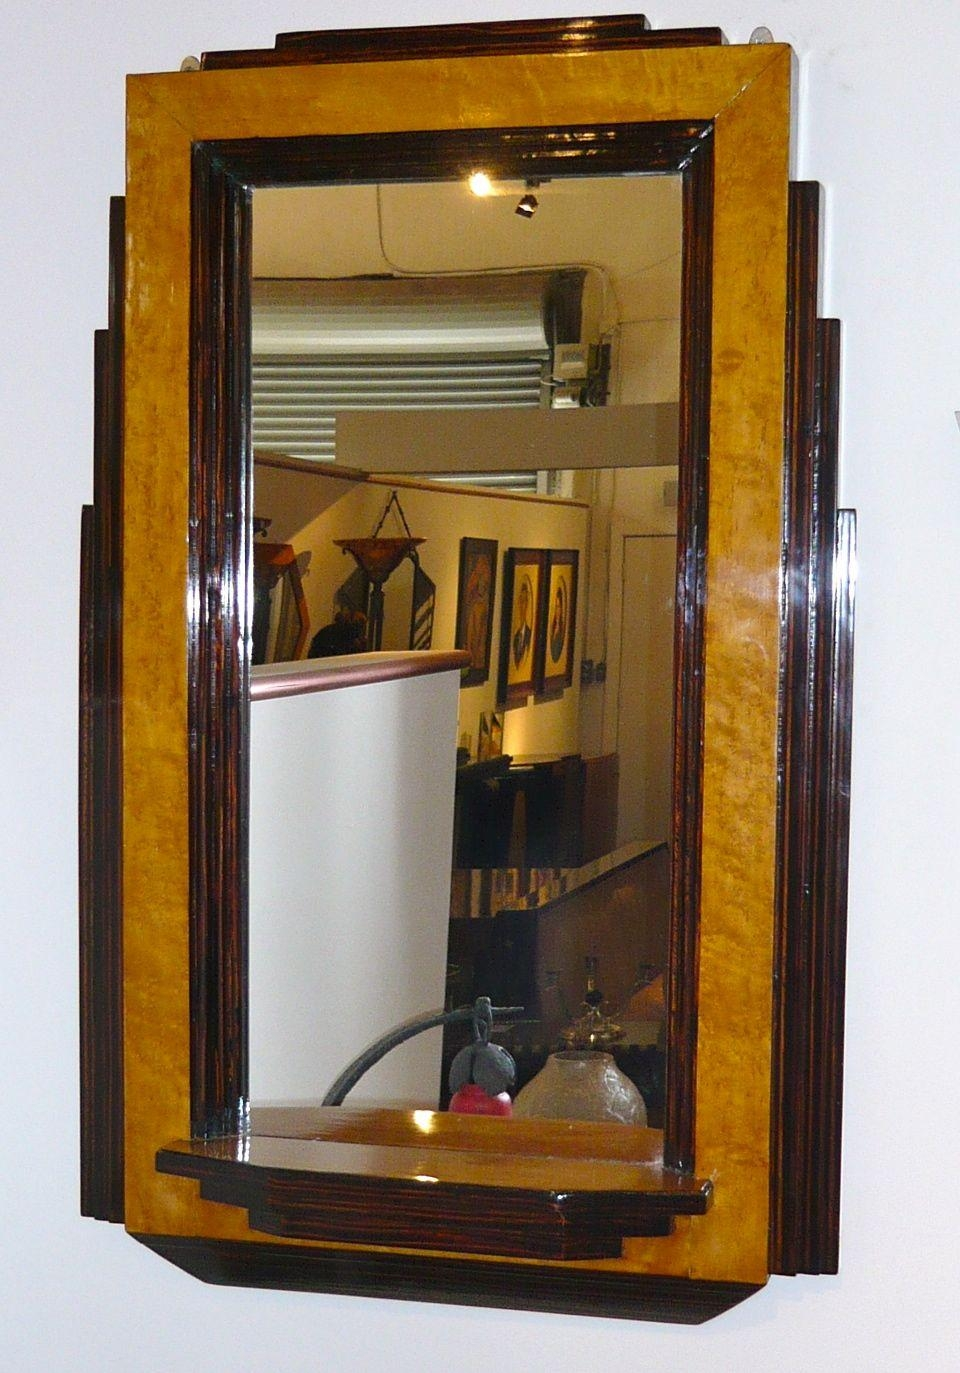 Art Deco Mirrors For Sale | Art Deco Collection Regarding Art Deco Mirrors (Image 6 of 20)